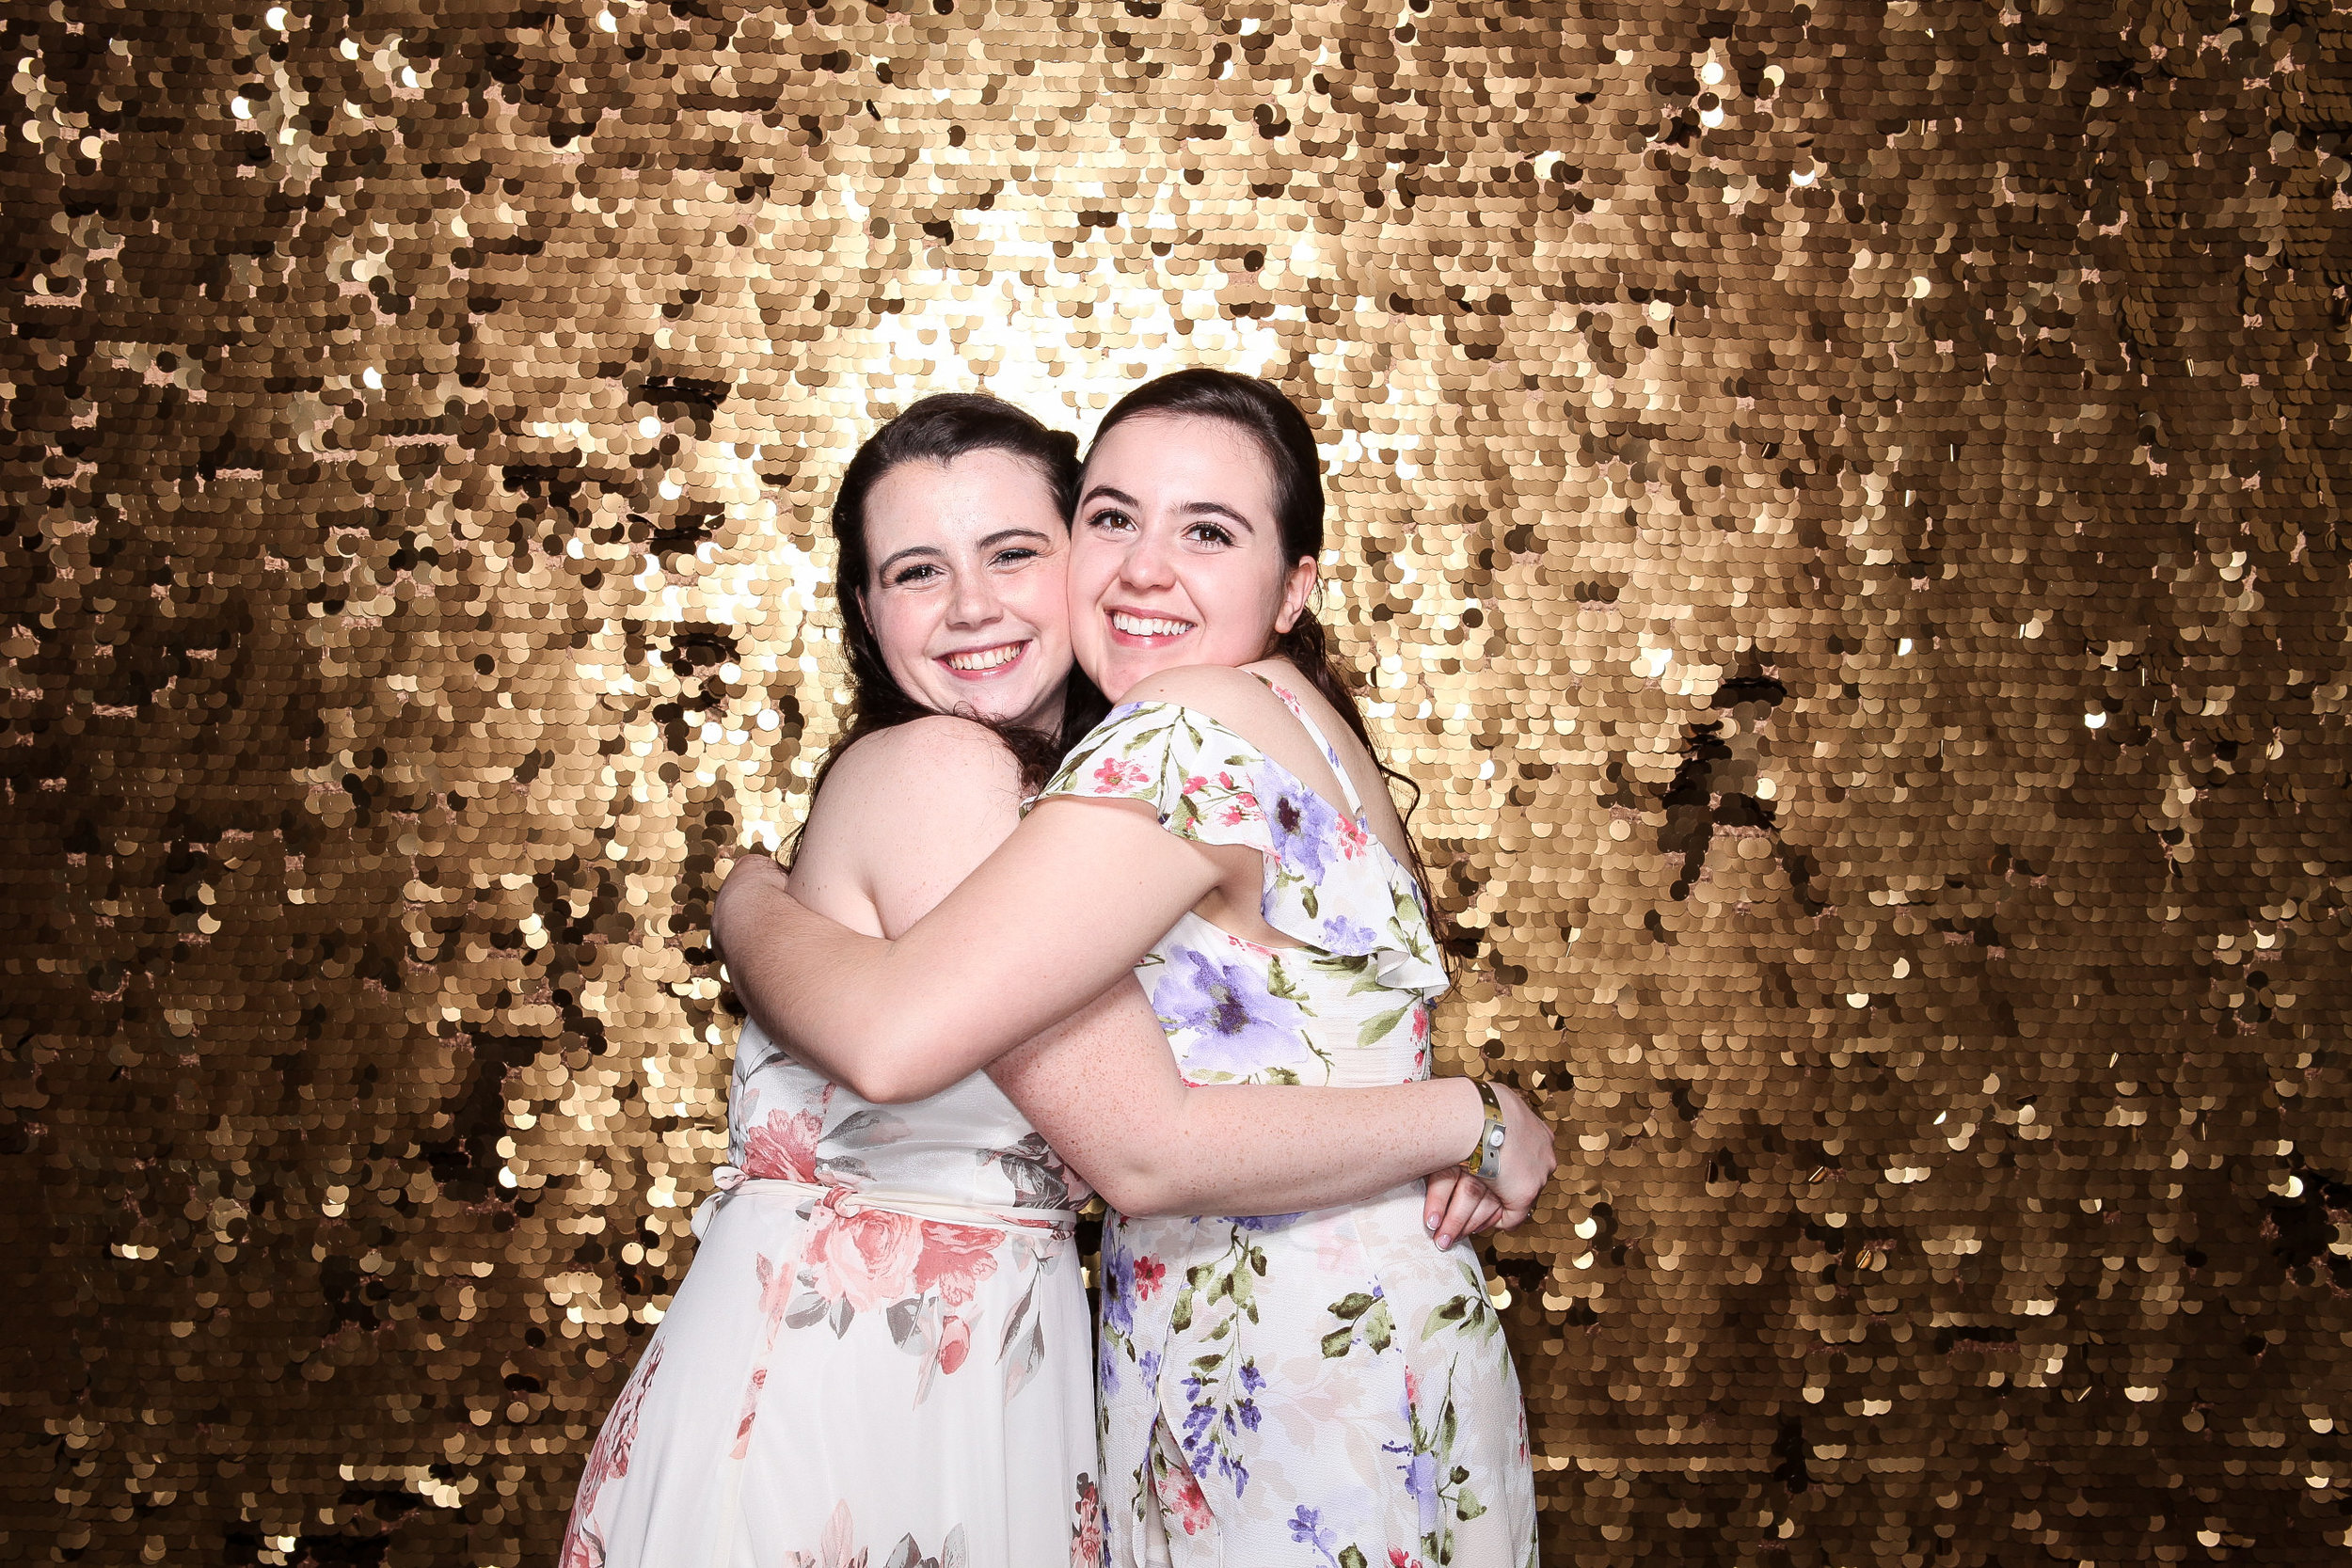 20190503_Adelphi_Senior_Formal-219.jpg